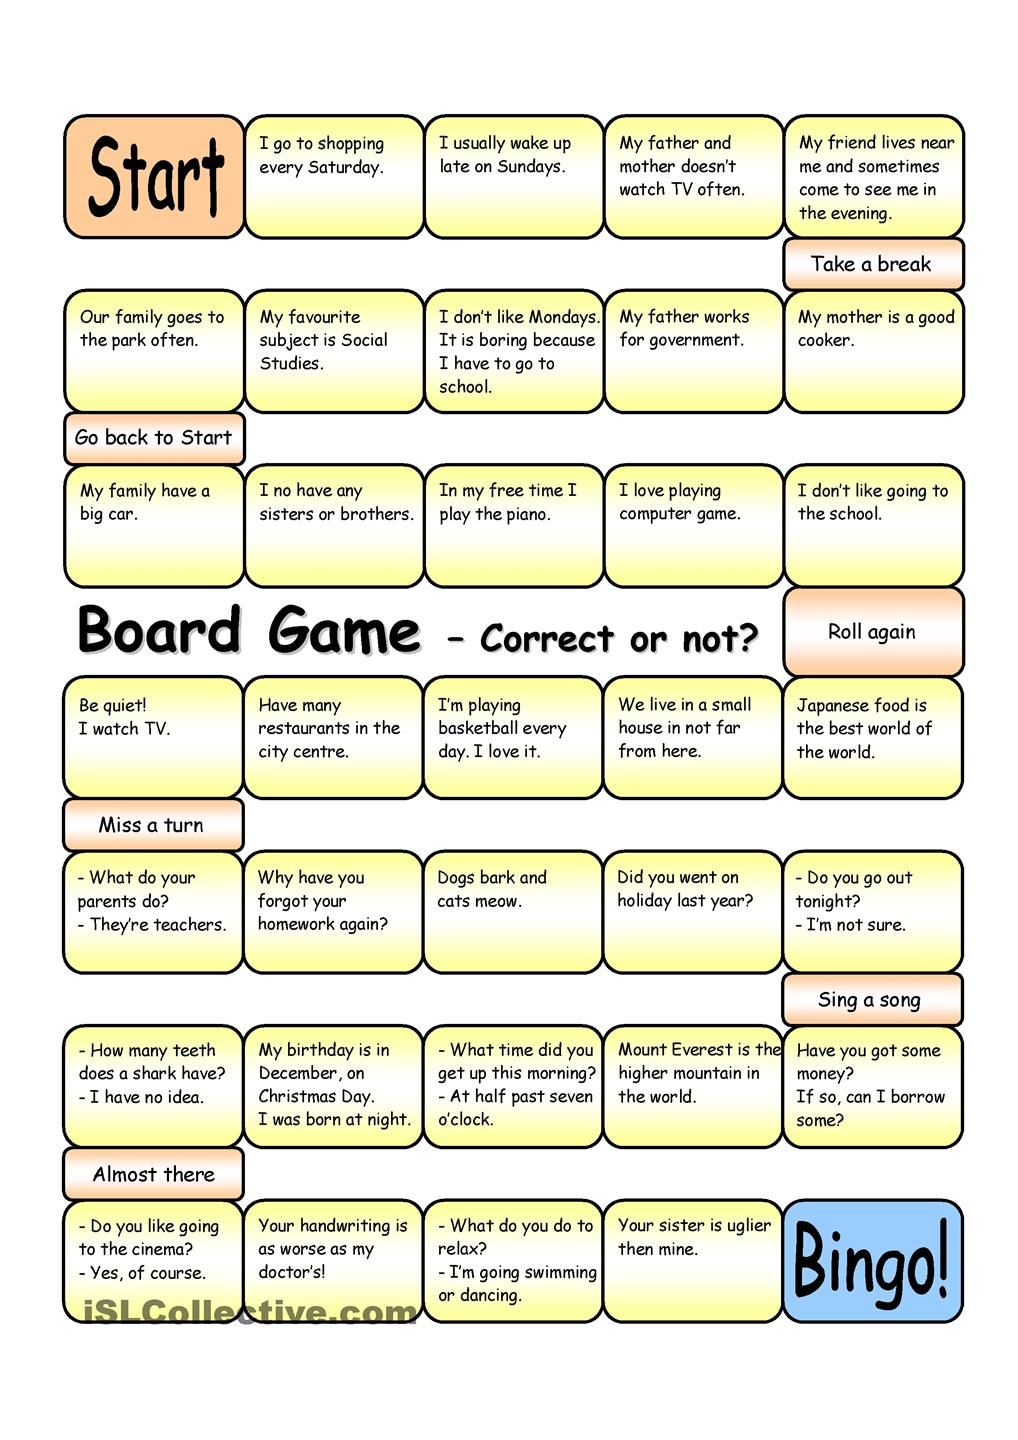 Esl Games Love This Board Game Correct Or Not Elementary Pre